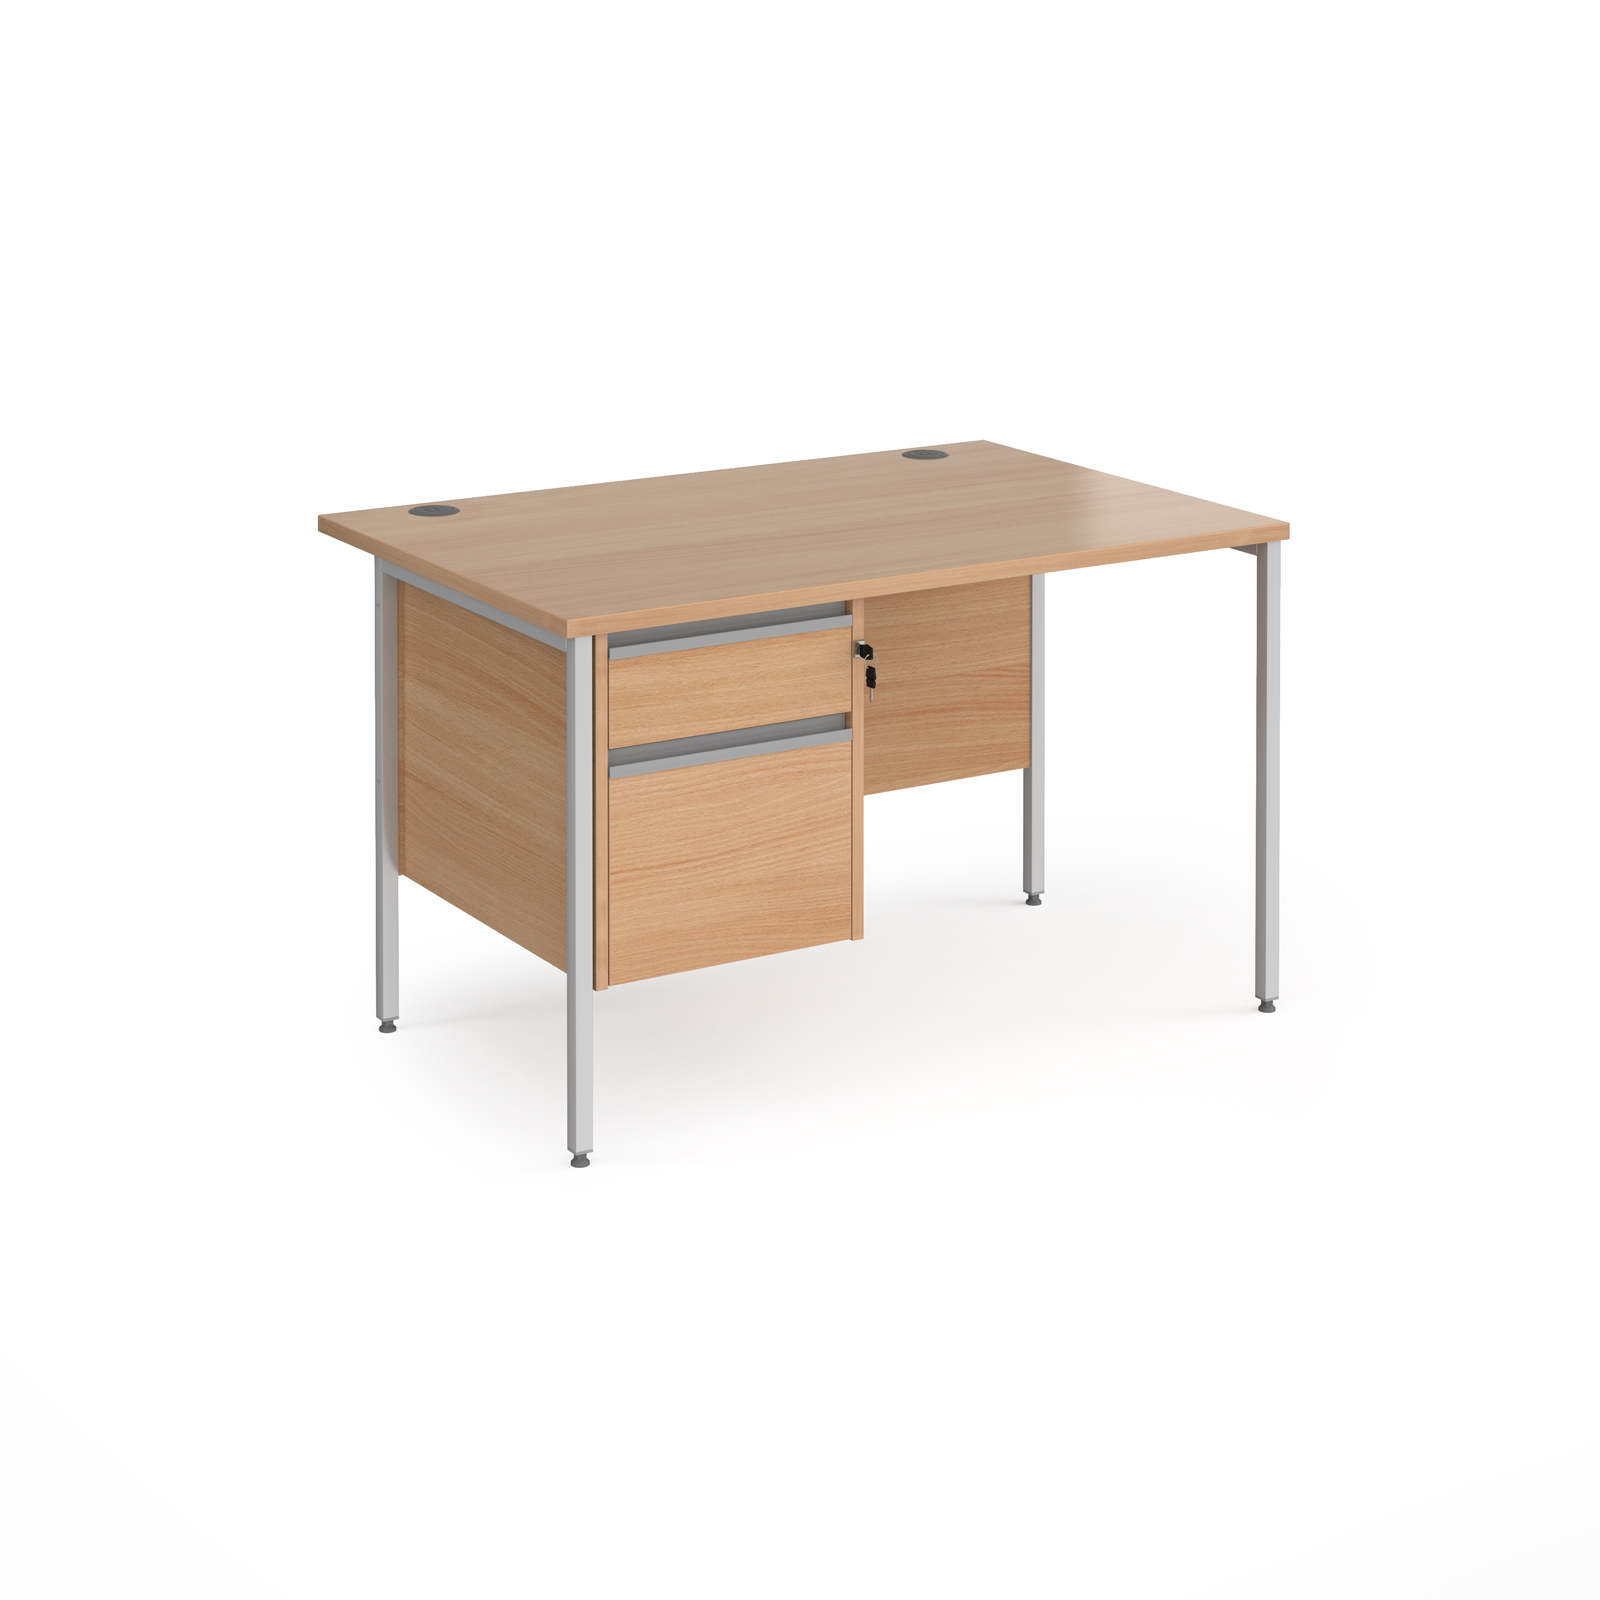 Rectangular Desks Contract 25 straight desk with 2 drawer pedestal and silver H-Frame leg 1200mm x 800mm - beech top